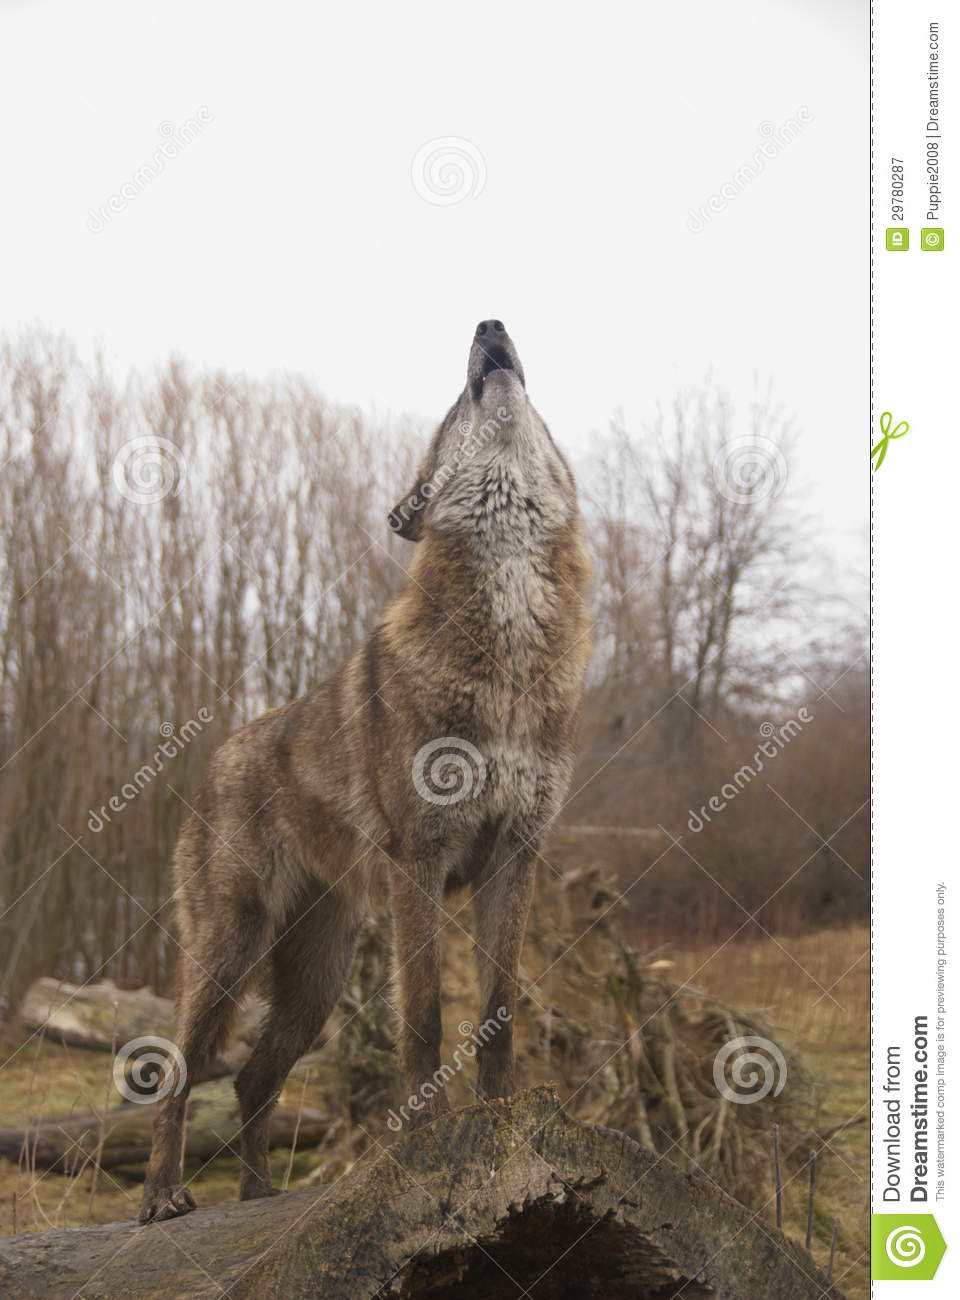 Howling Wolf Royalty Free Stock Photography - Image: 29780287